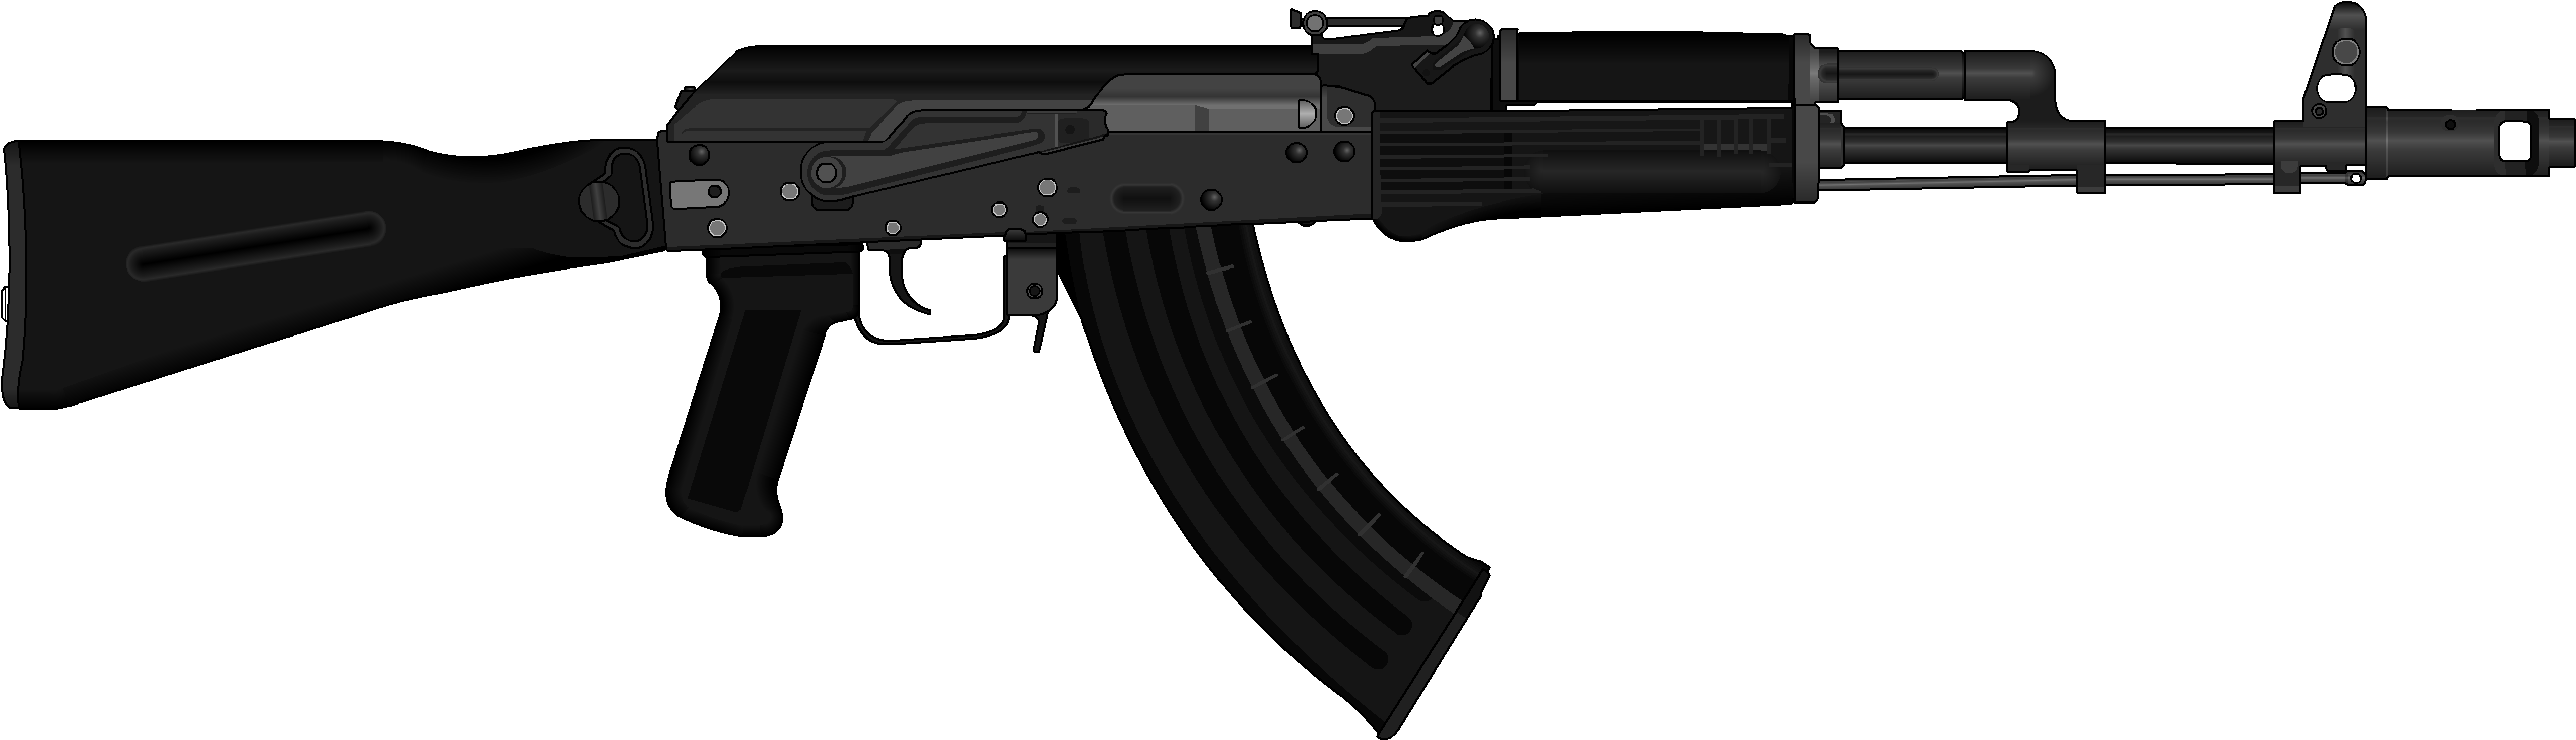 File:AK-103 Synthetic Furniture.png - Wikimedia Commons